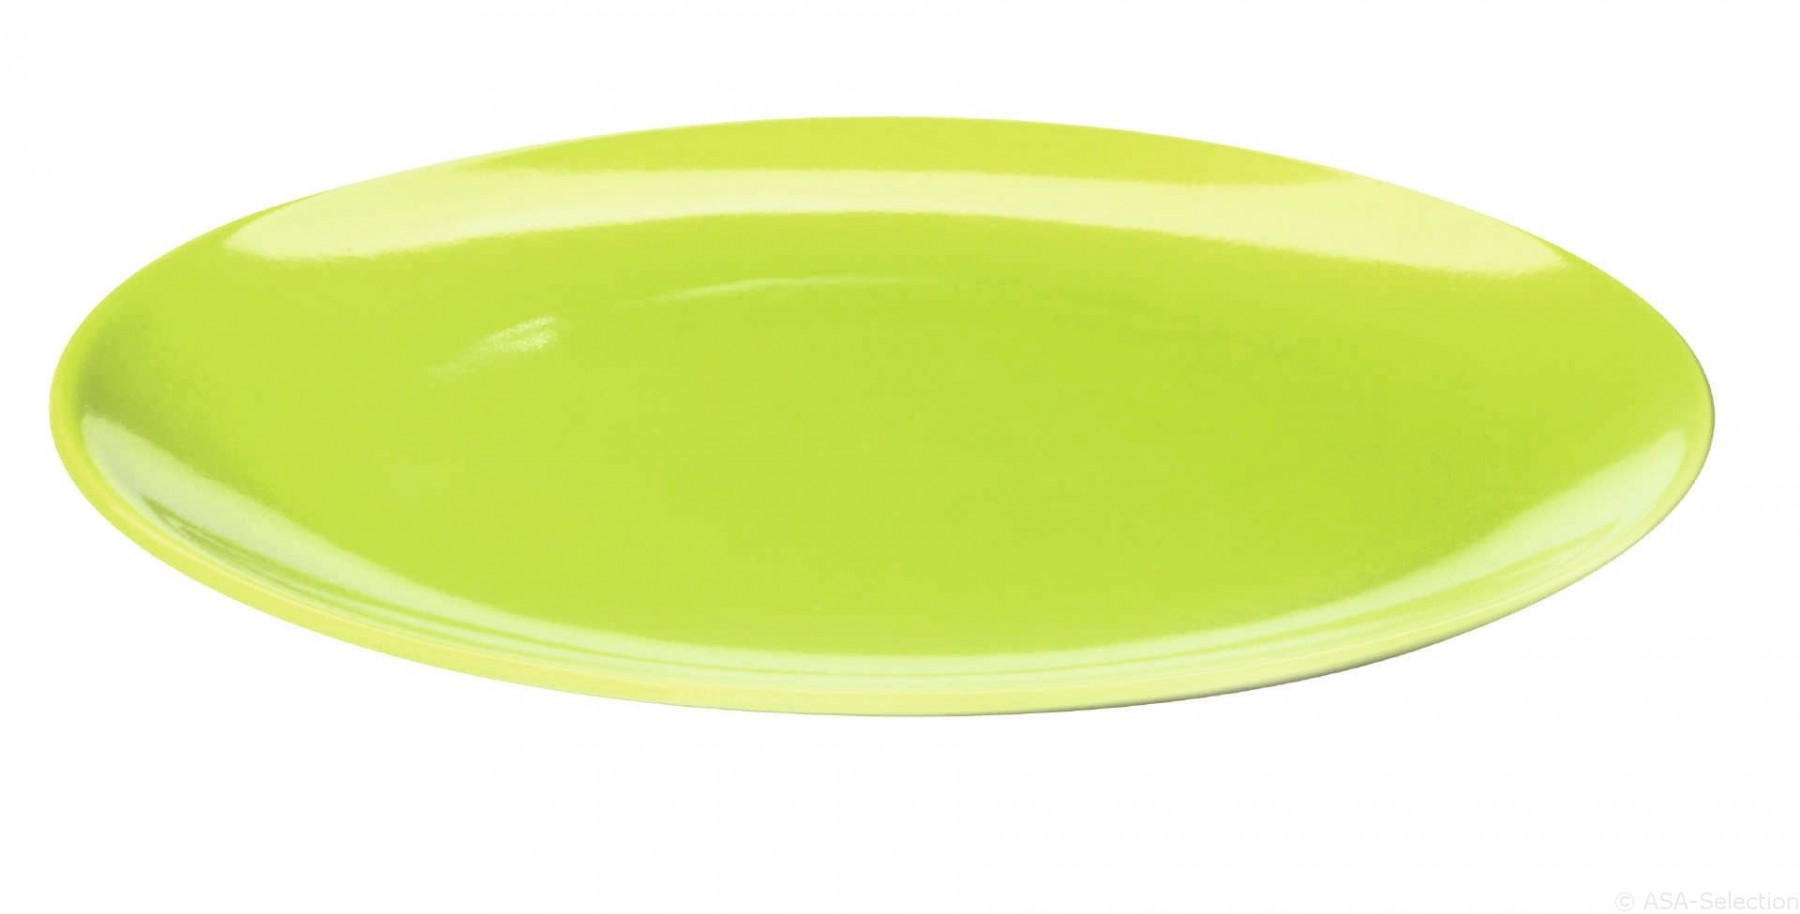 Colors it - Assiette à  dessert vert kiwi 20 cm en porcelaine ( par2)